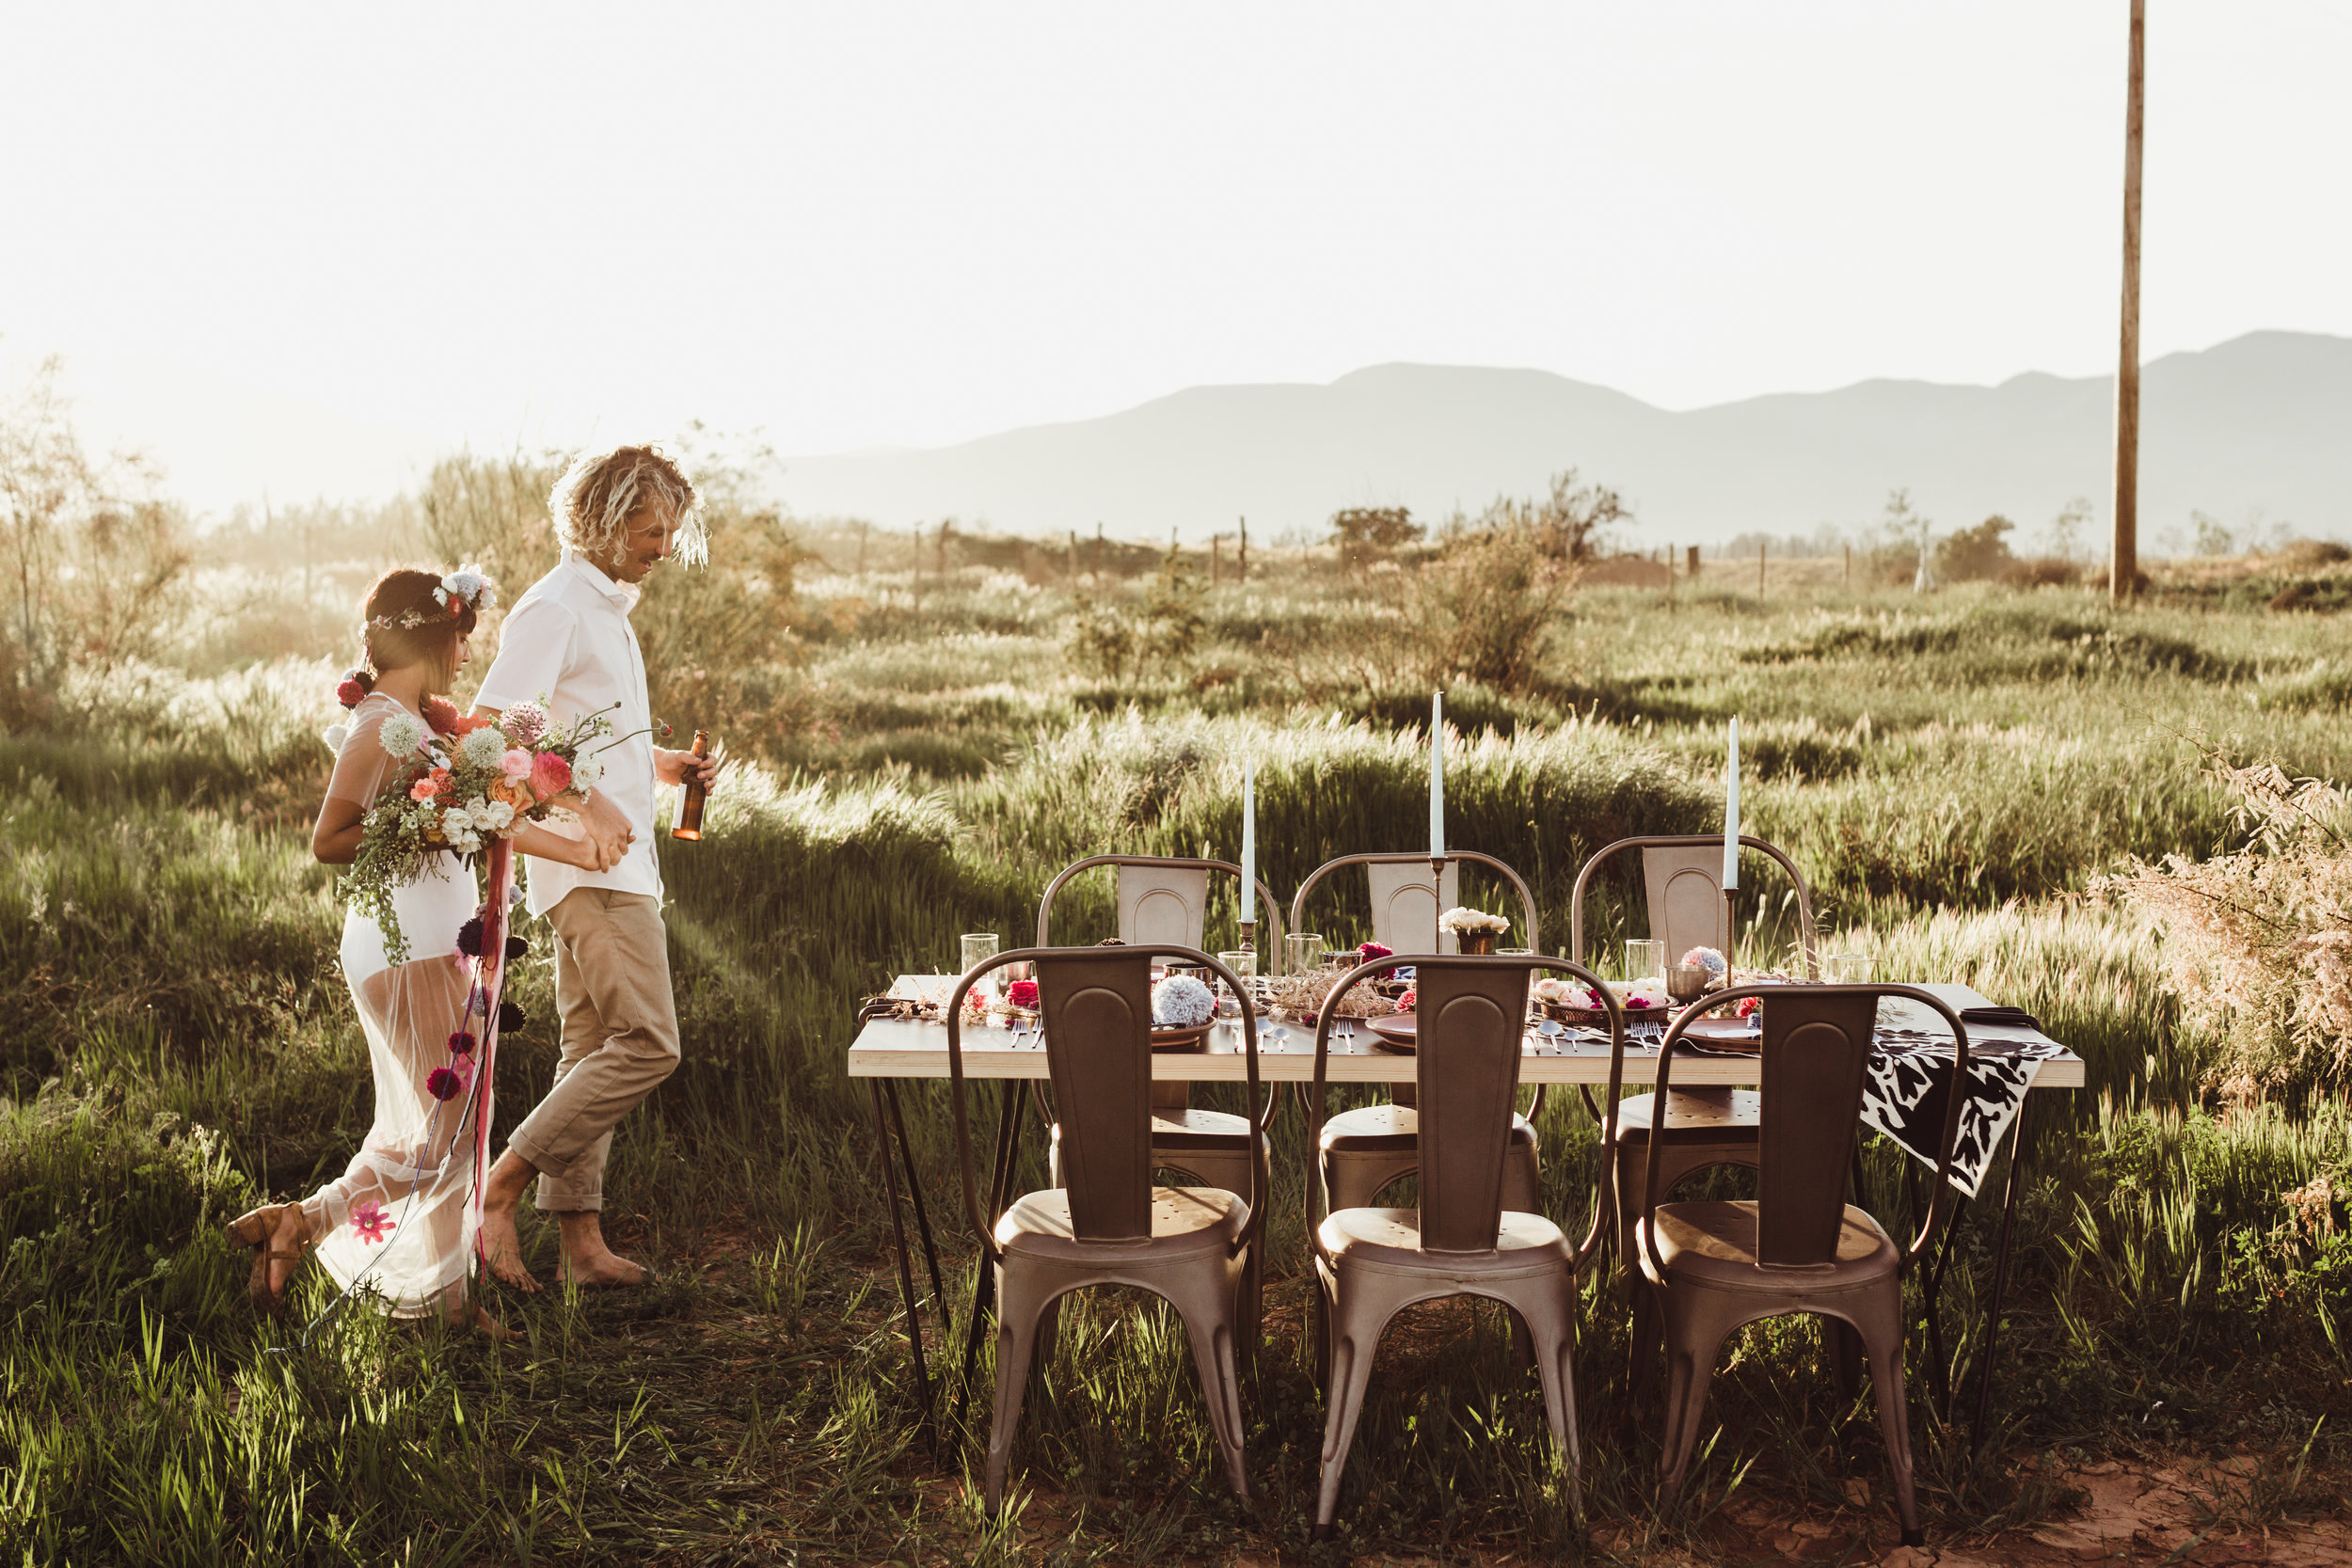 Jamie_English_Photography_Styled_Elopement_Valle_de_Guadalupe_Baja_California_Mexico_Luna_Wild_March_2017-38.jpg